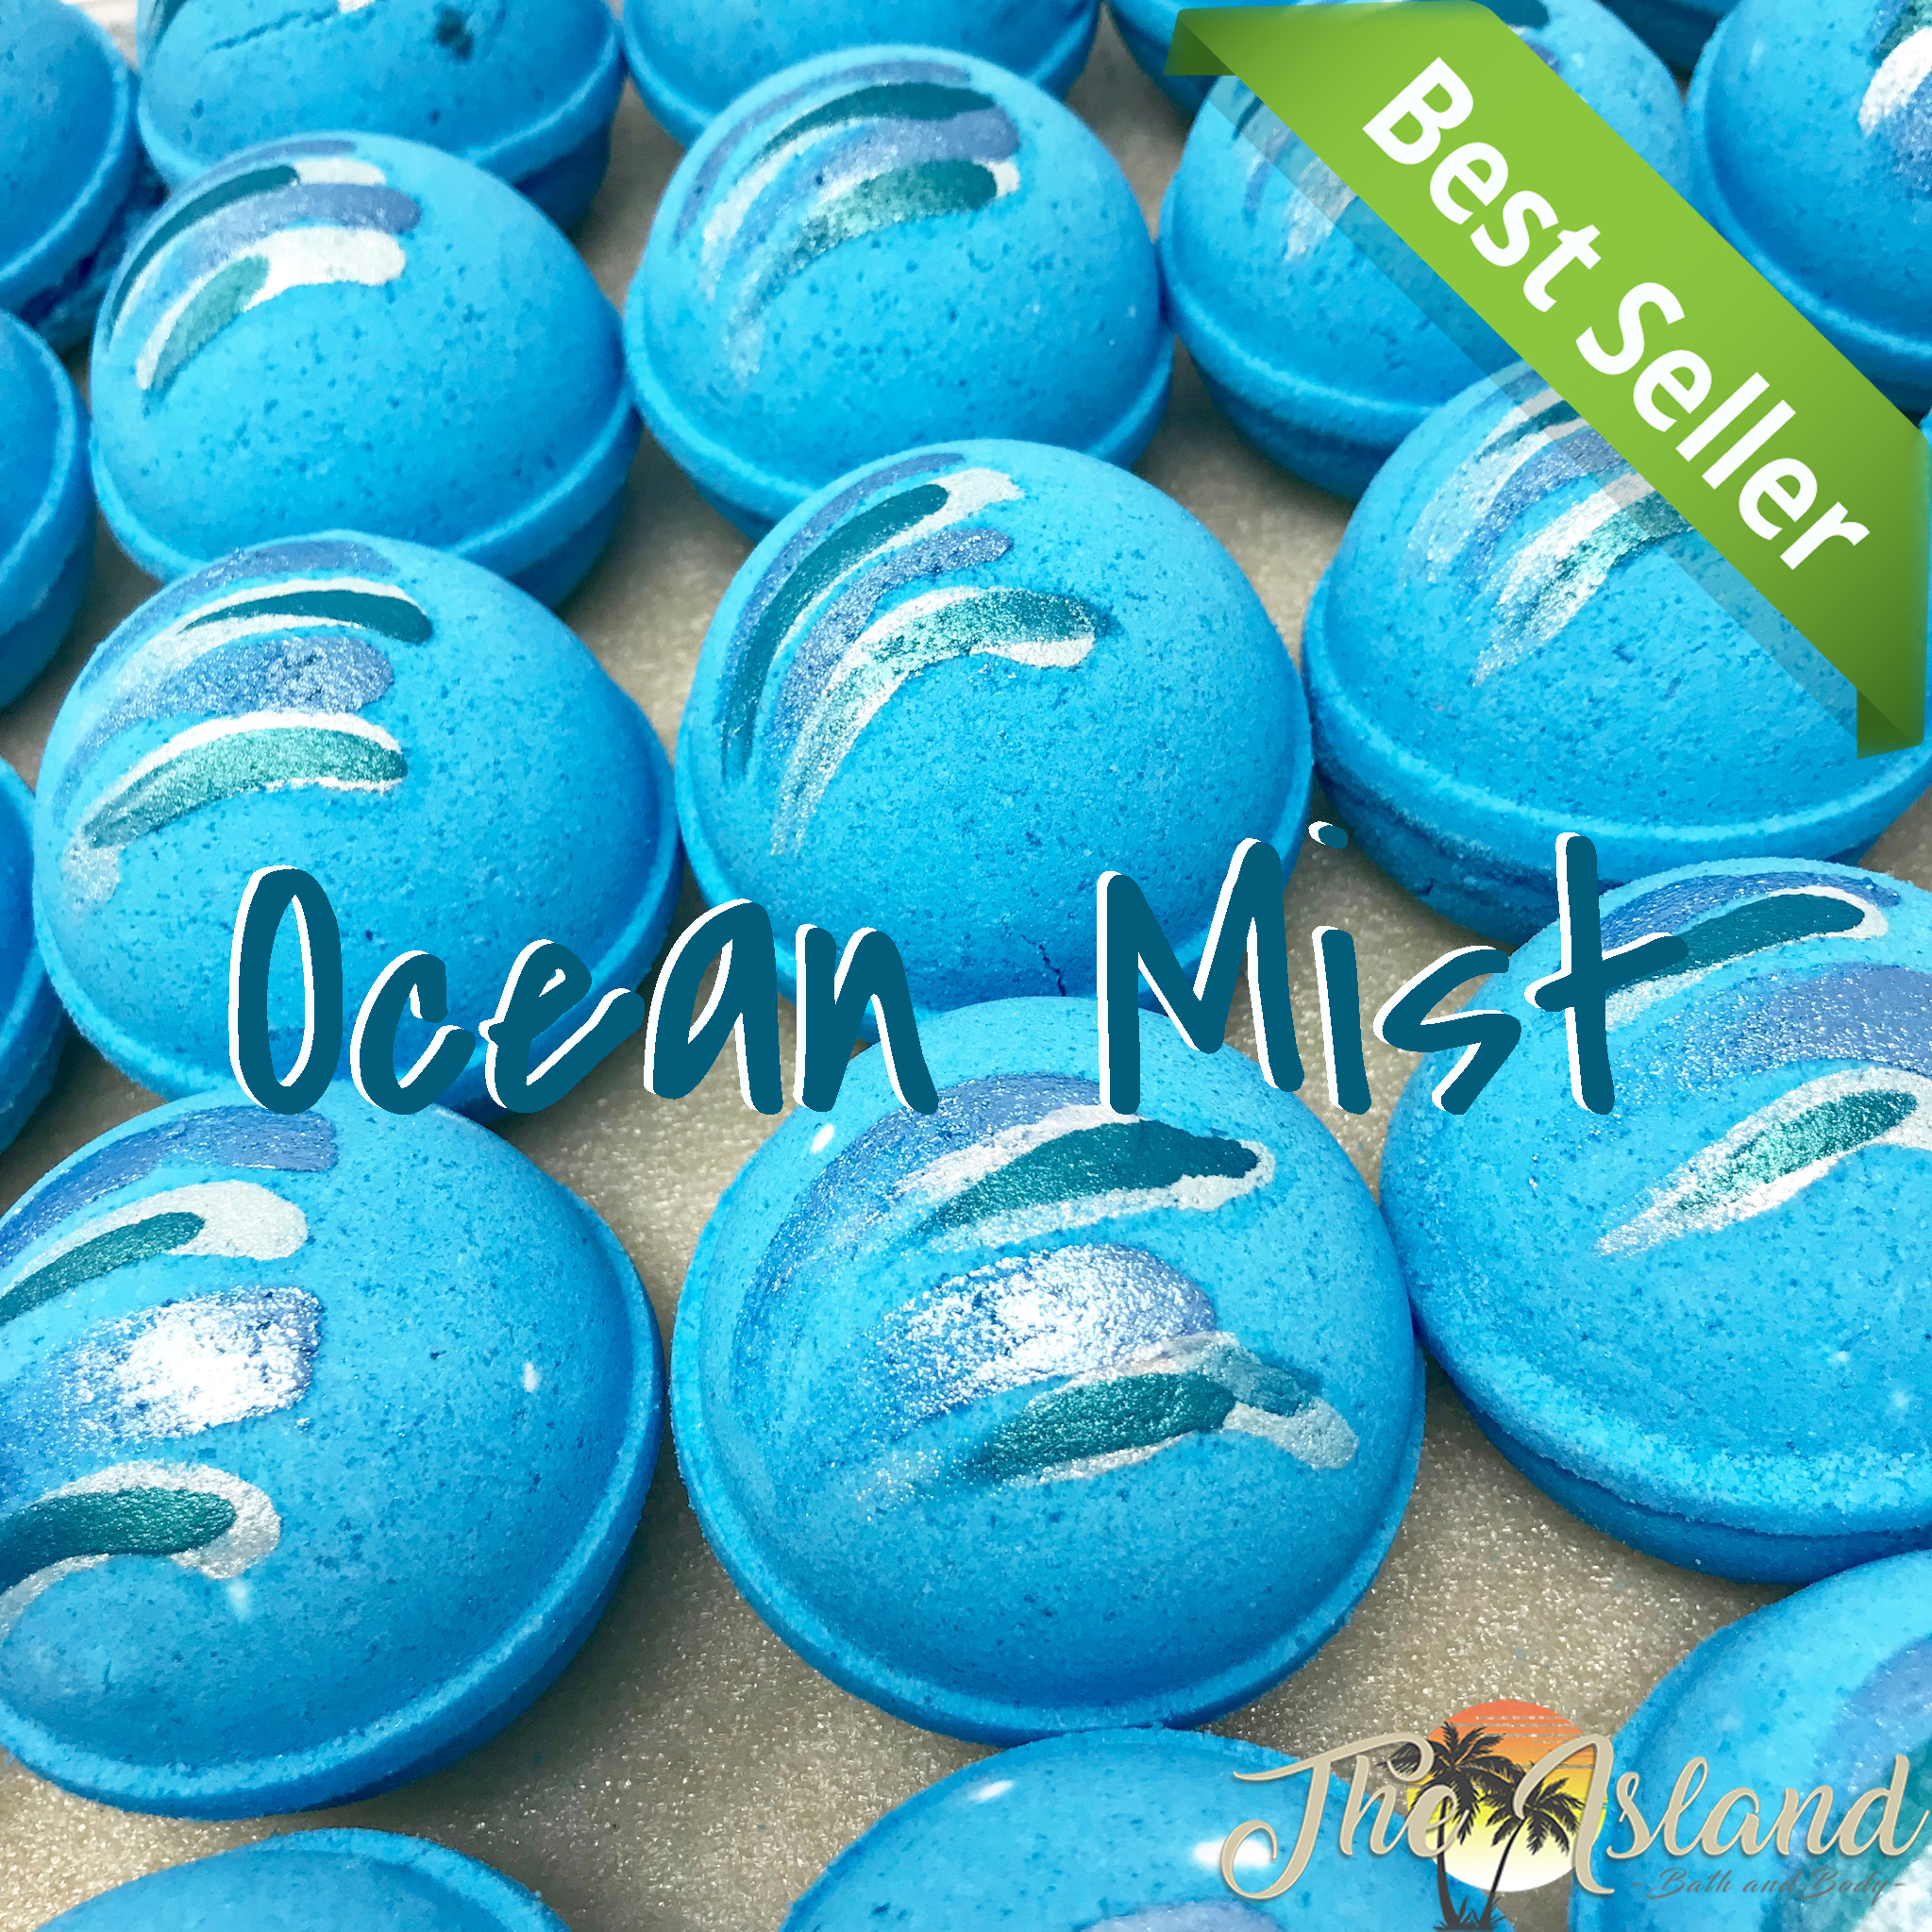 Ocean Mist 5.5 oz Bath Bombs